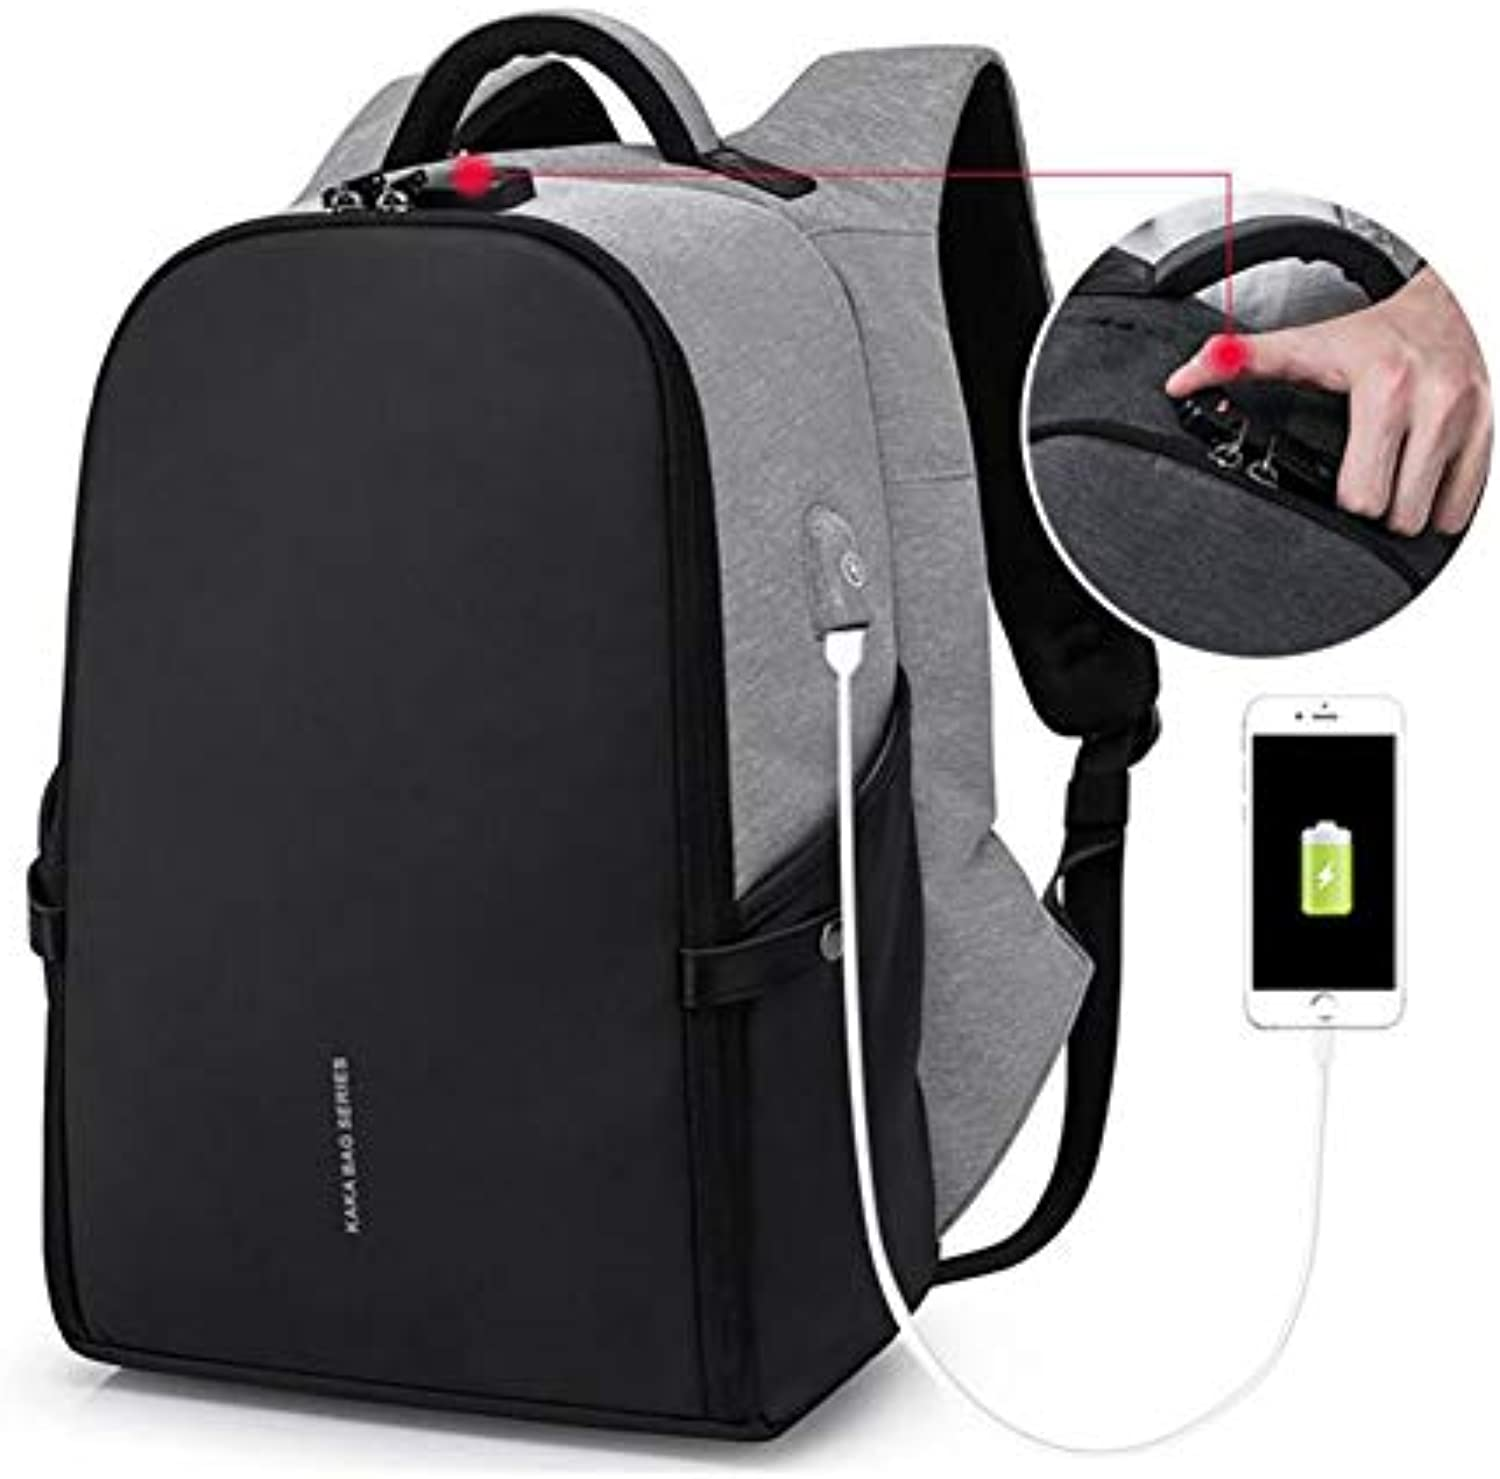 efa6ceaabc16 Anti Theft Backpack, Business Laptop Backpack with with with USB ...